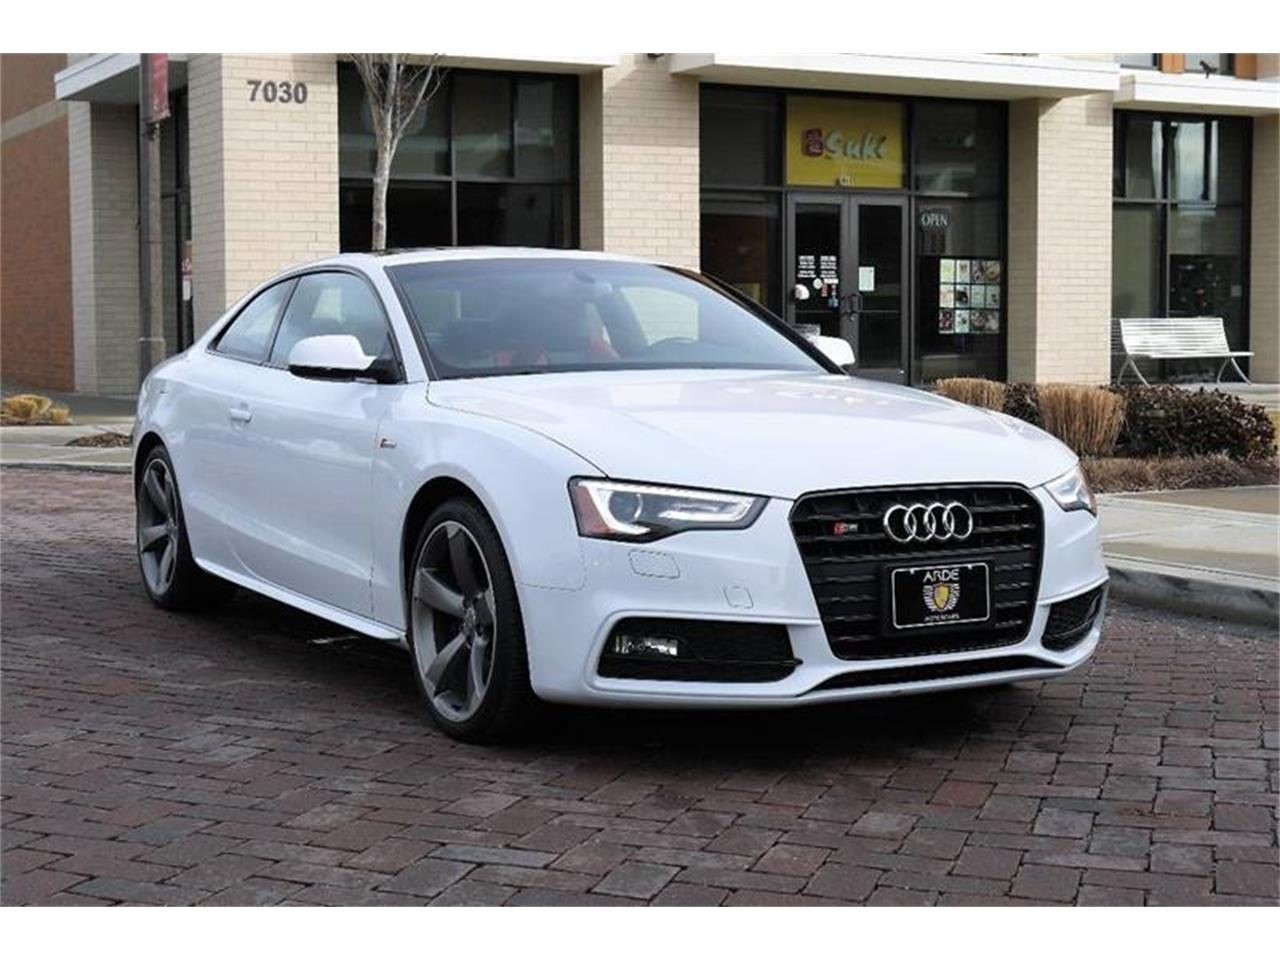 Large Picture of 2015 Audi S5 located in Brentwood Tennessee - $45,800.00 - MOD5